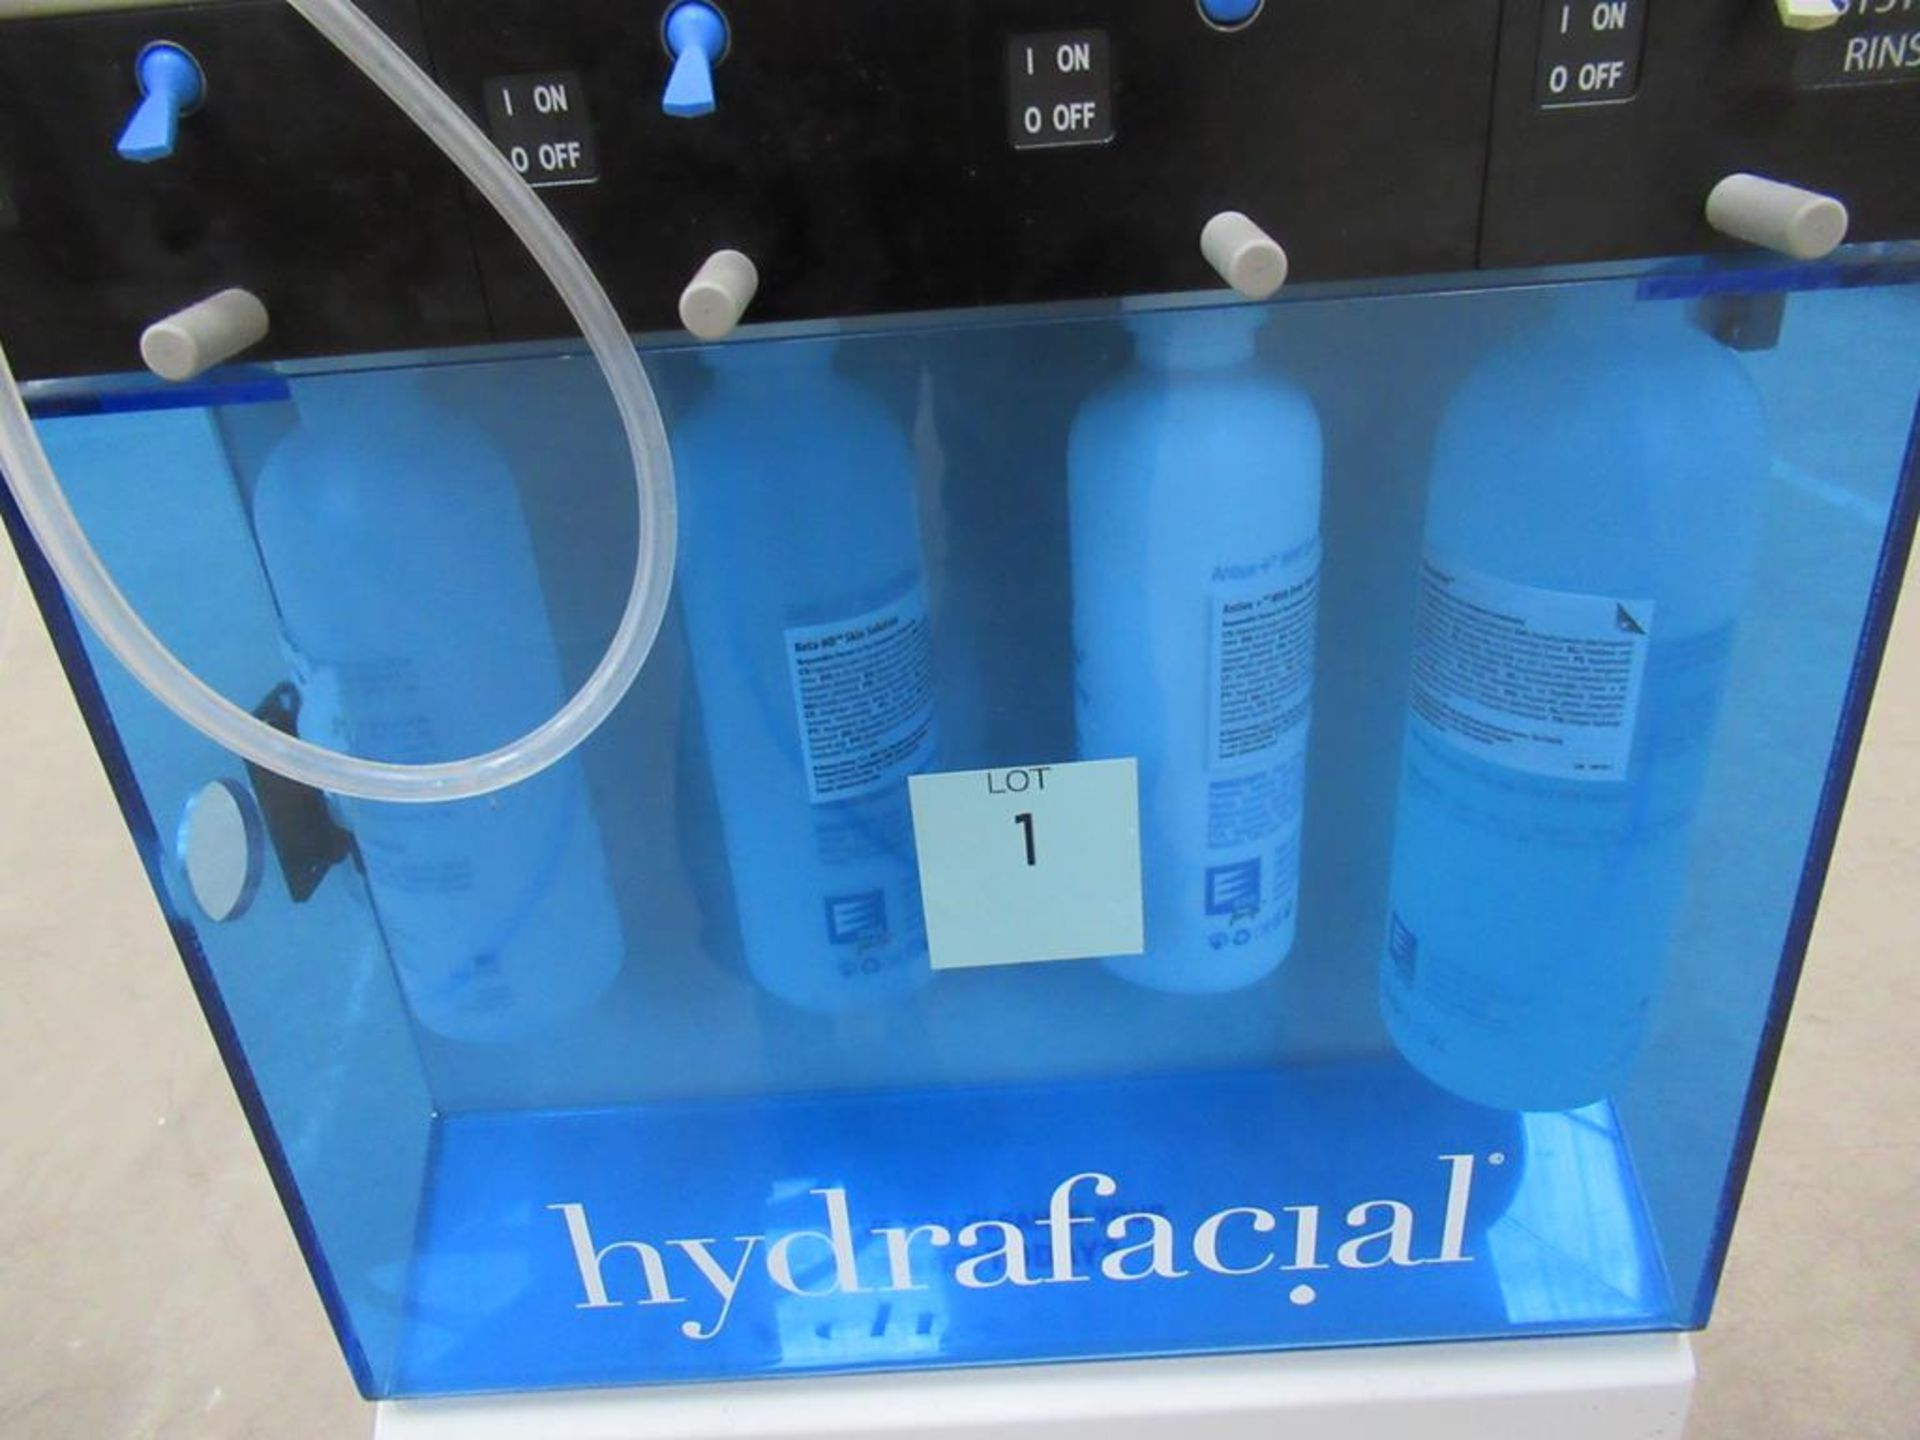 Hydra Facial MD Tower System - Image 5 of 9